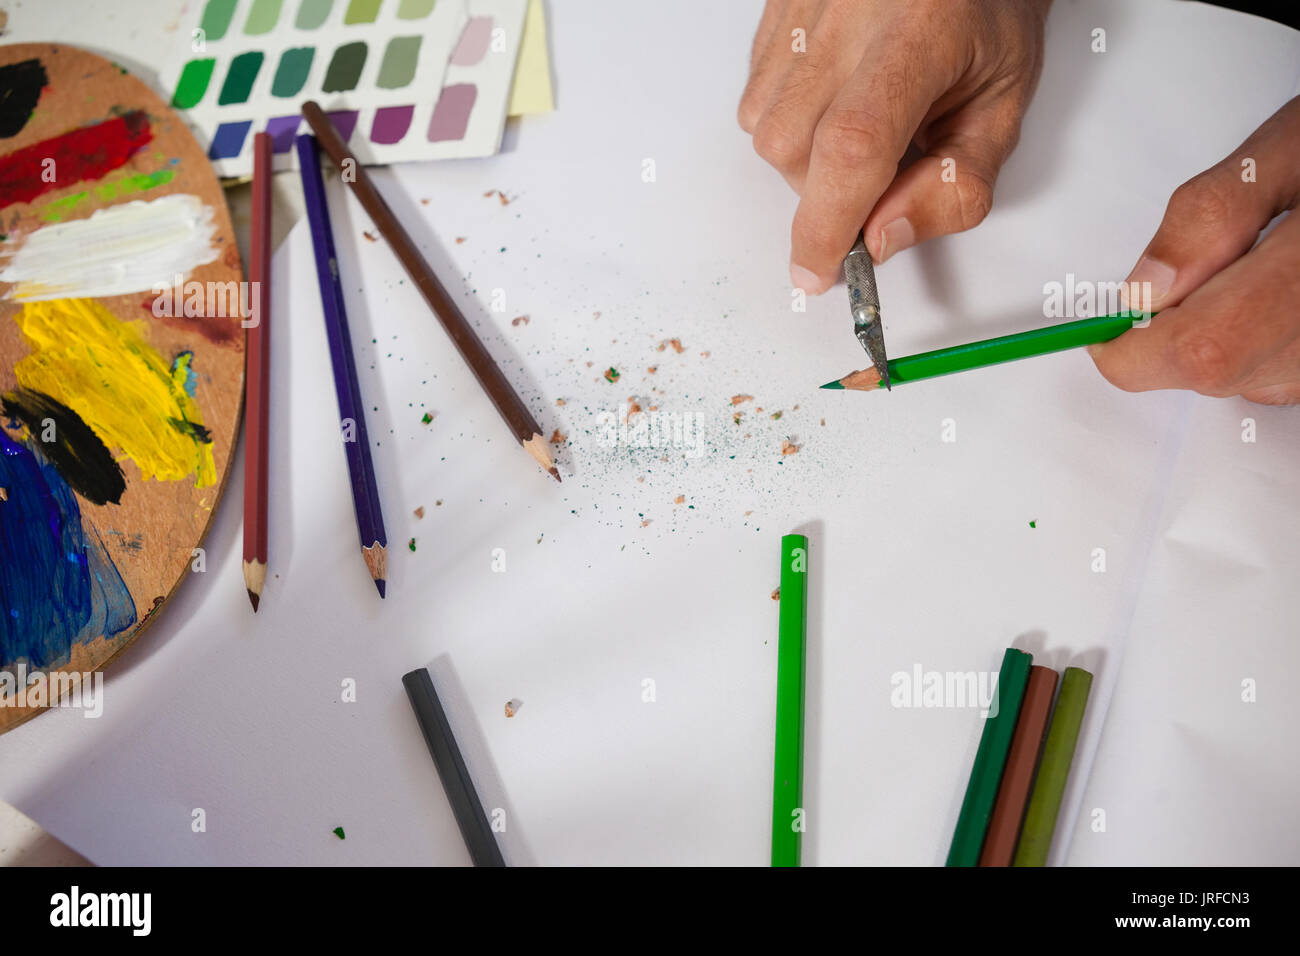 Close-up of man sharpening colored pencil in drawing class - Stock Image